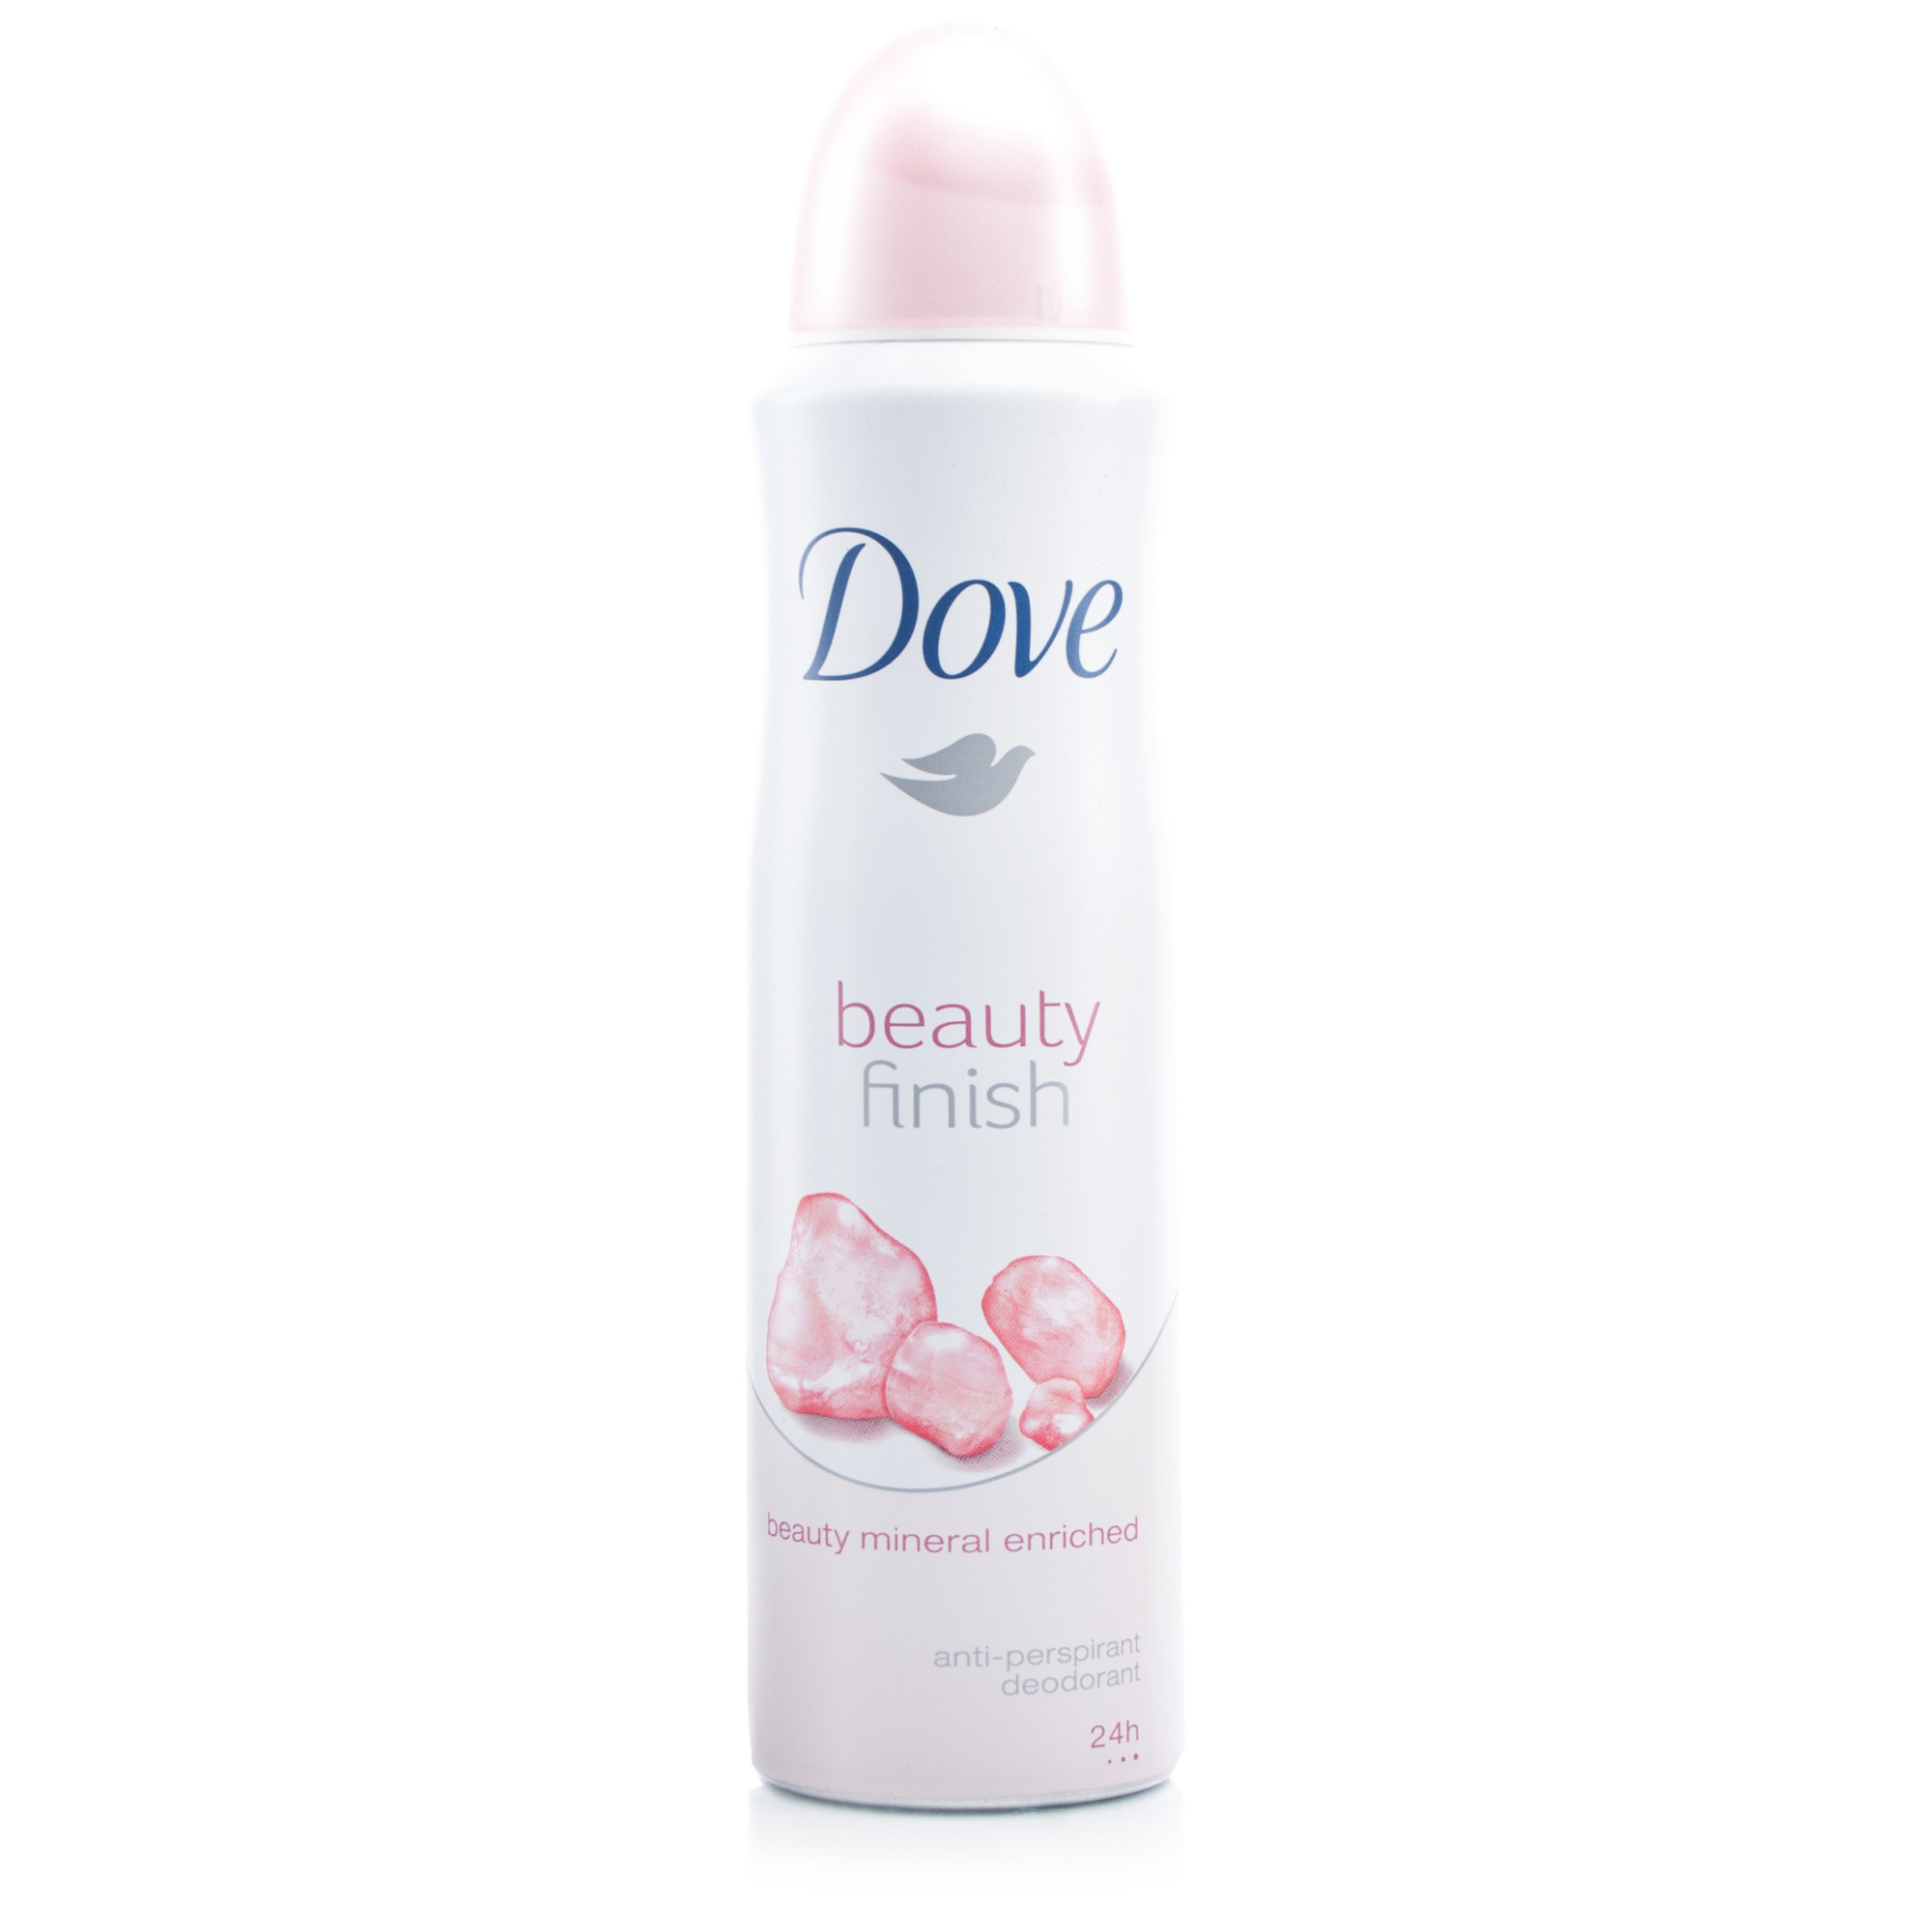 Dove Beauty Finish Anti-Perspirant Deodorant